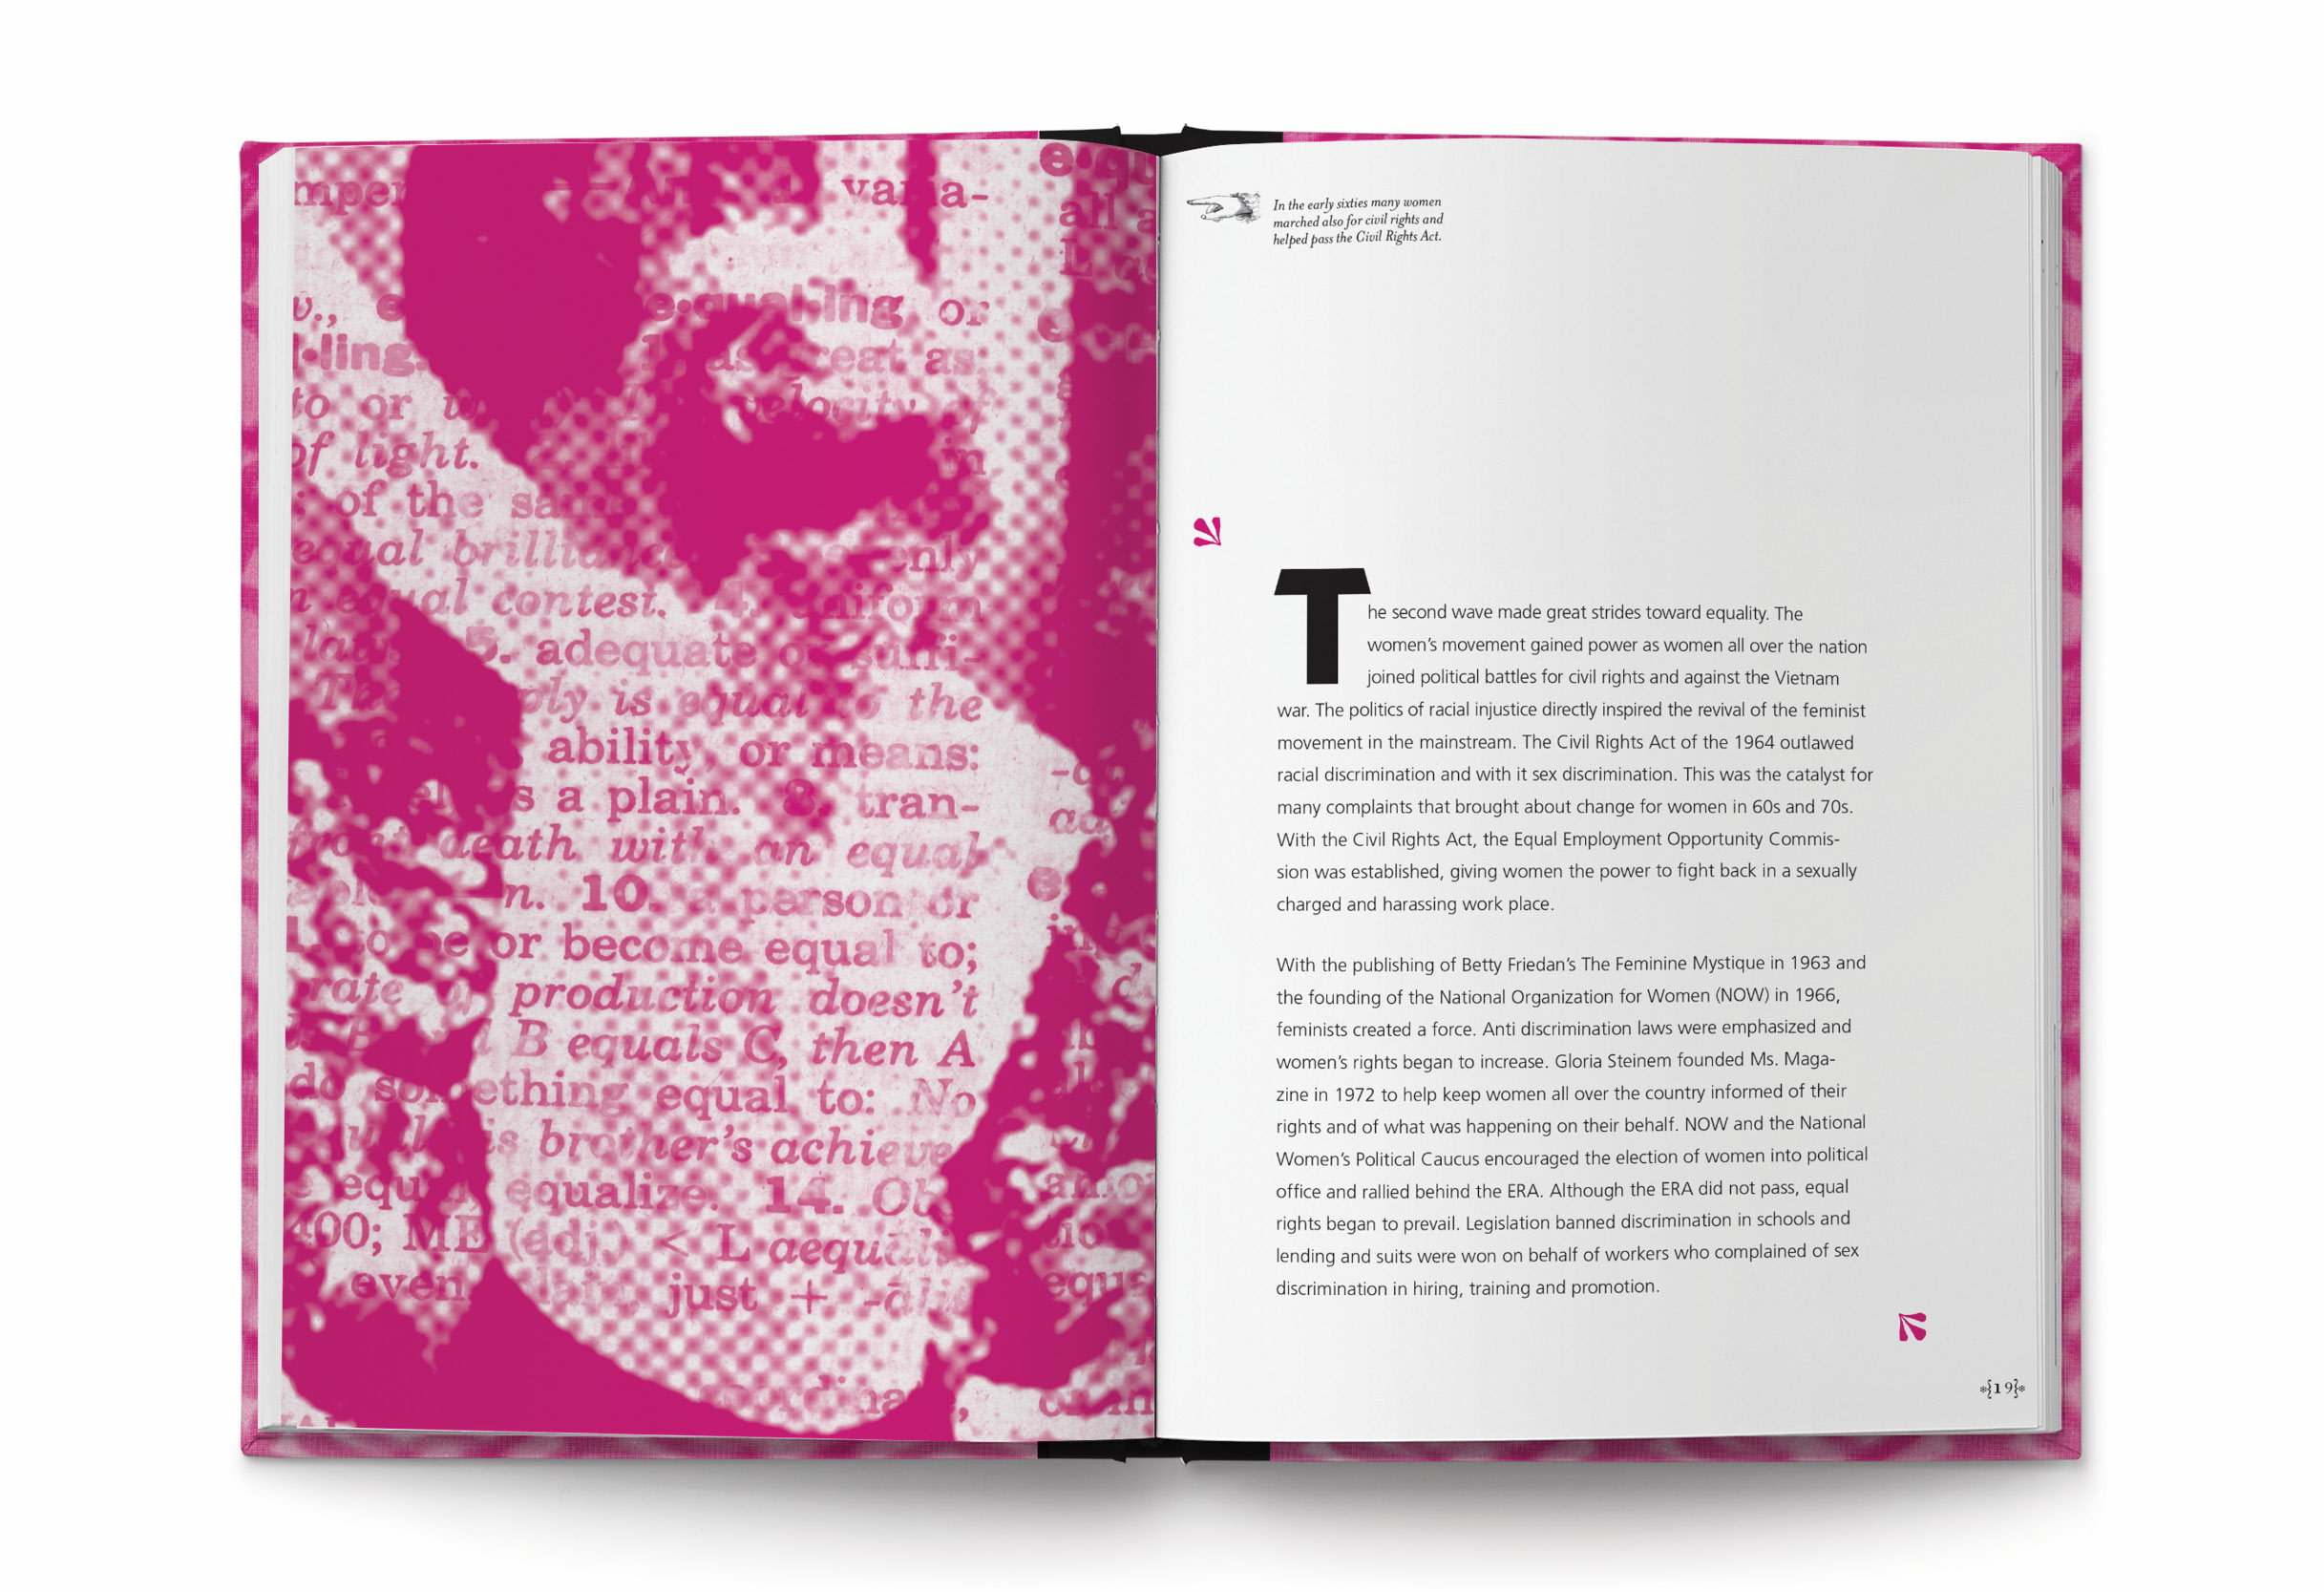 Interior spread of the book. Left hand page is a full bleed, monotoned magenta collaged image of a woman protesting with a dictionary entry overlayed. The right hand page shows a one column page of copy with generous margins.